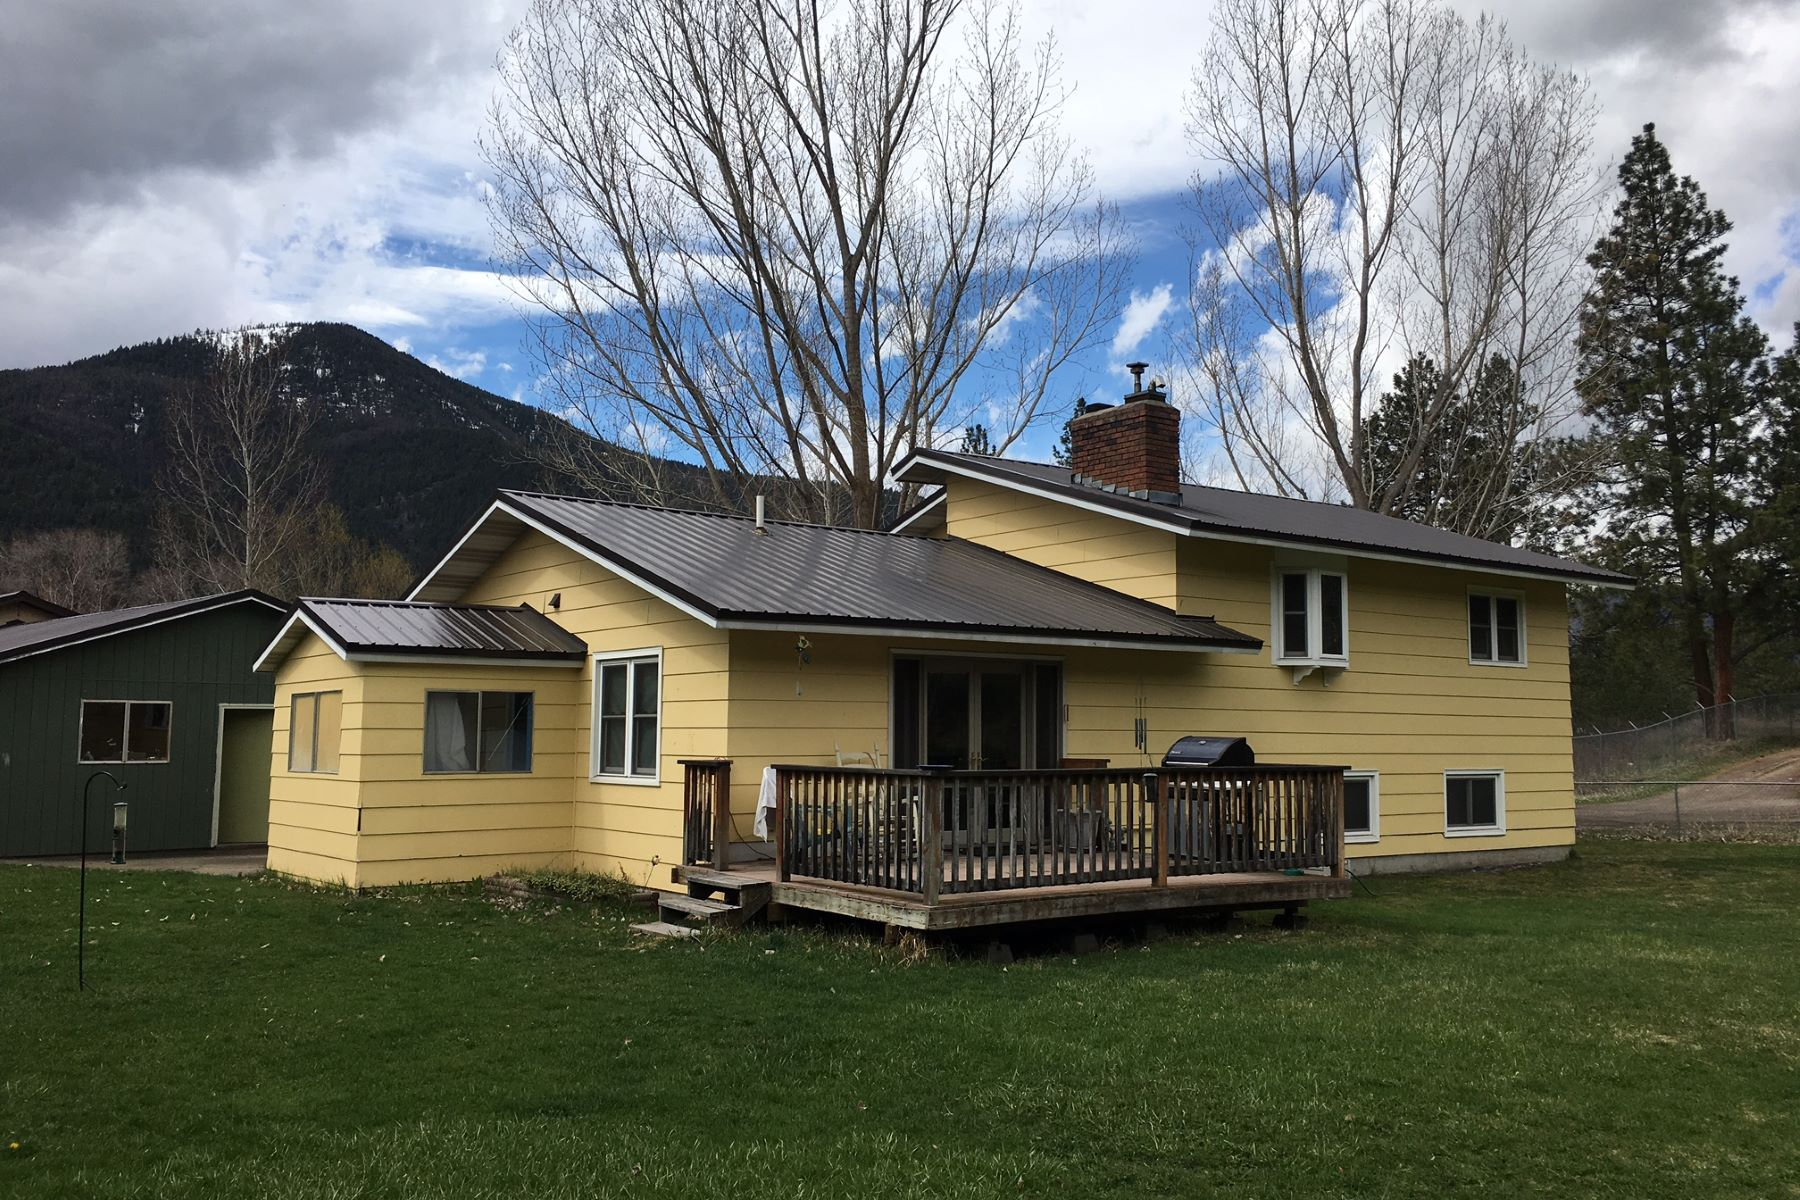 Single Family Home for Sale at 12440 Us Highway 10 E, Clinton, MT 59825 12440 Us Highway 10 E Clinton, Montana 59825 United States